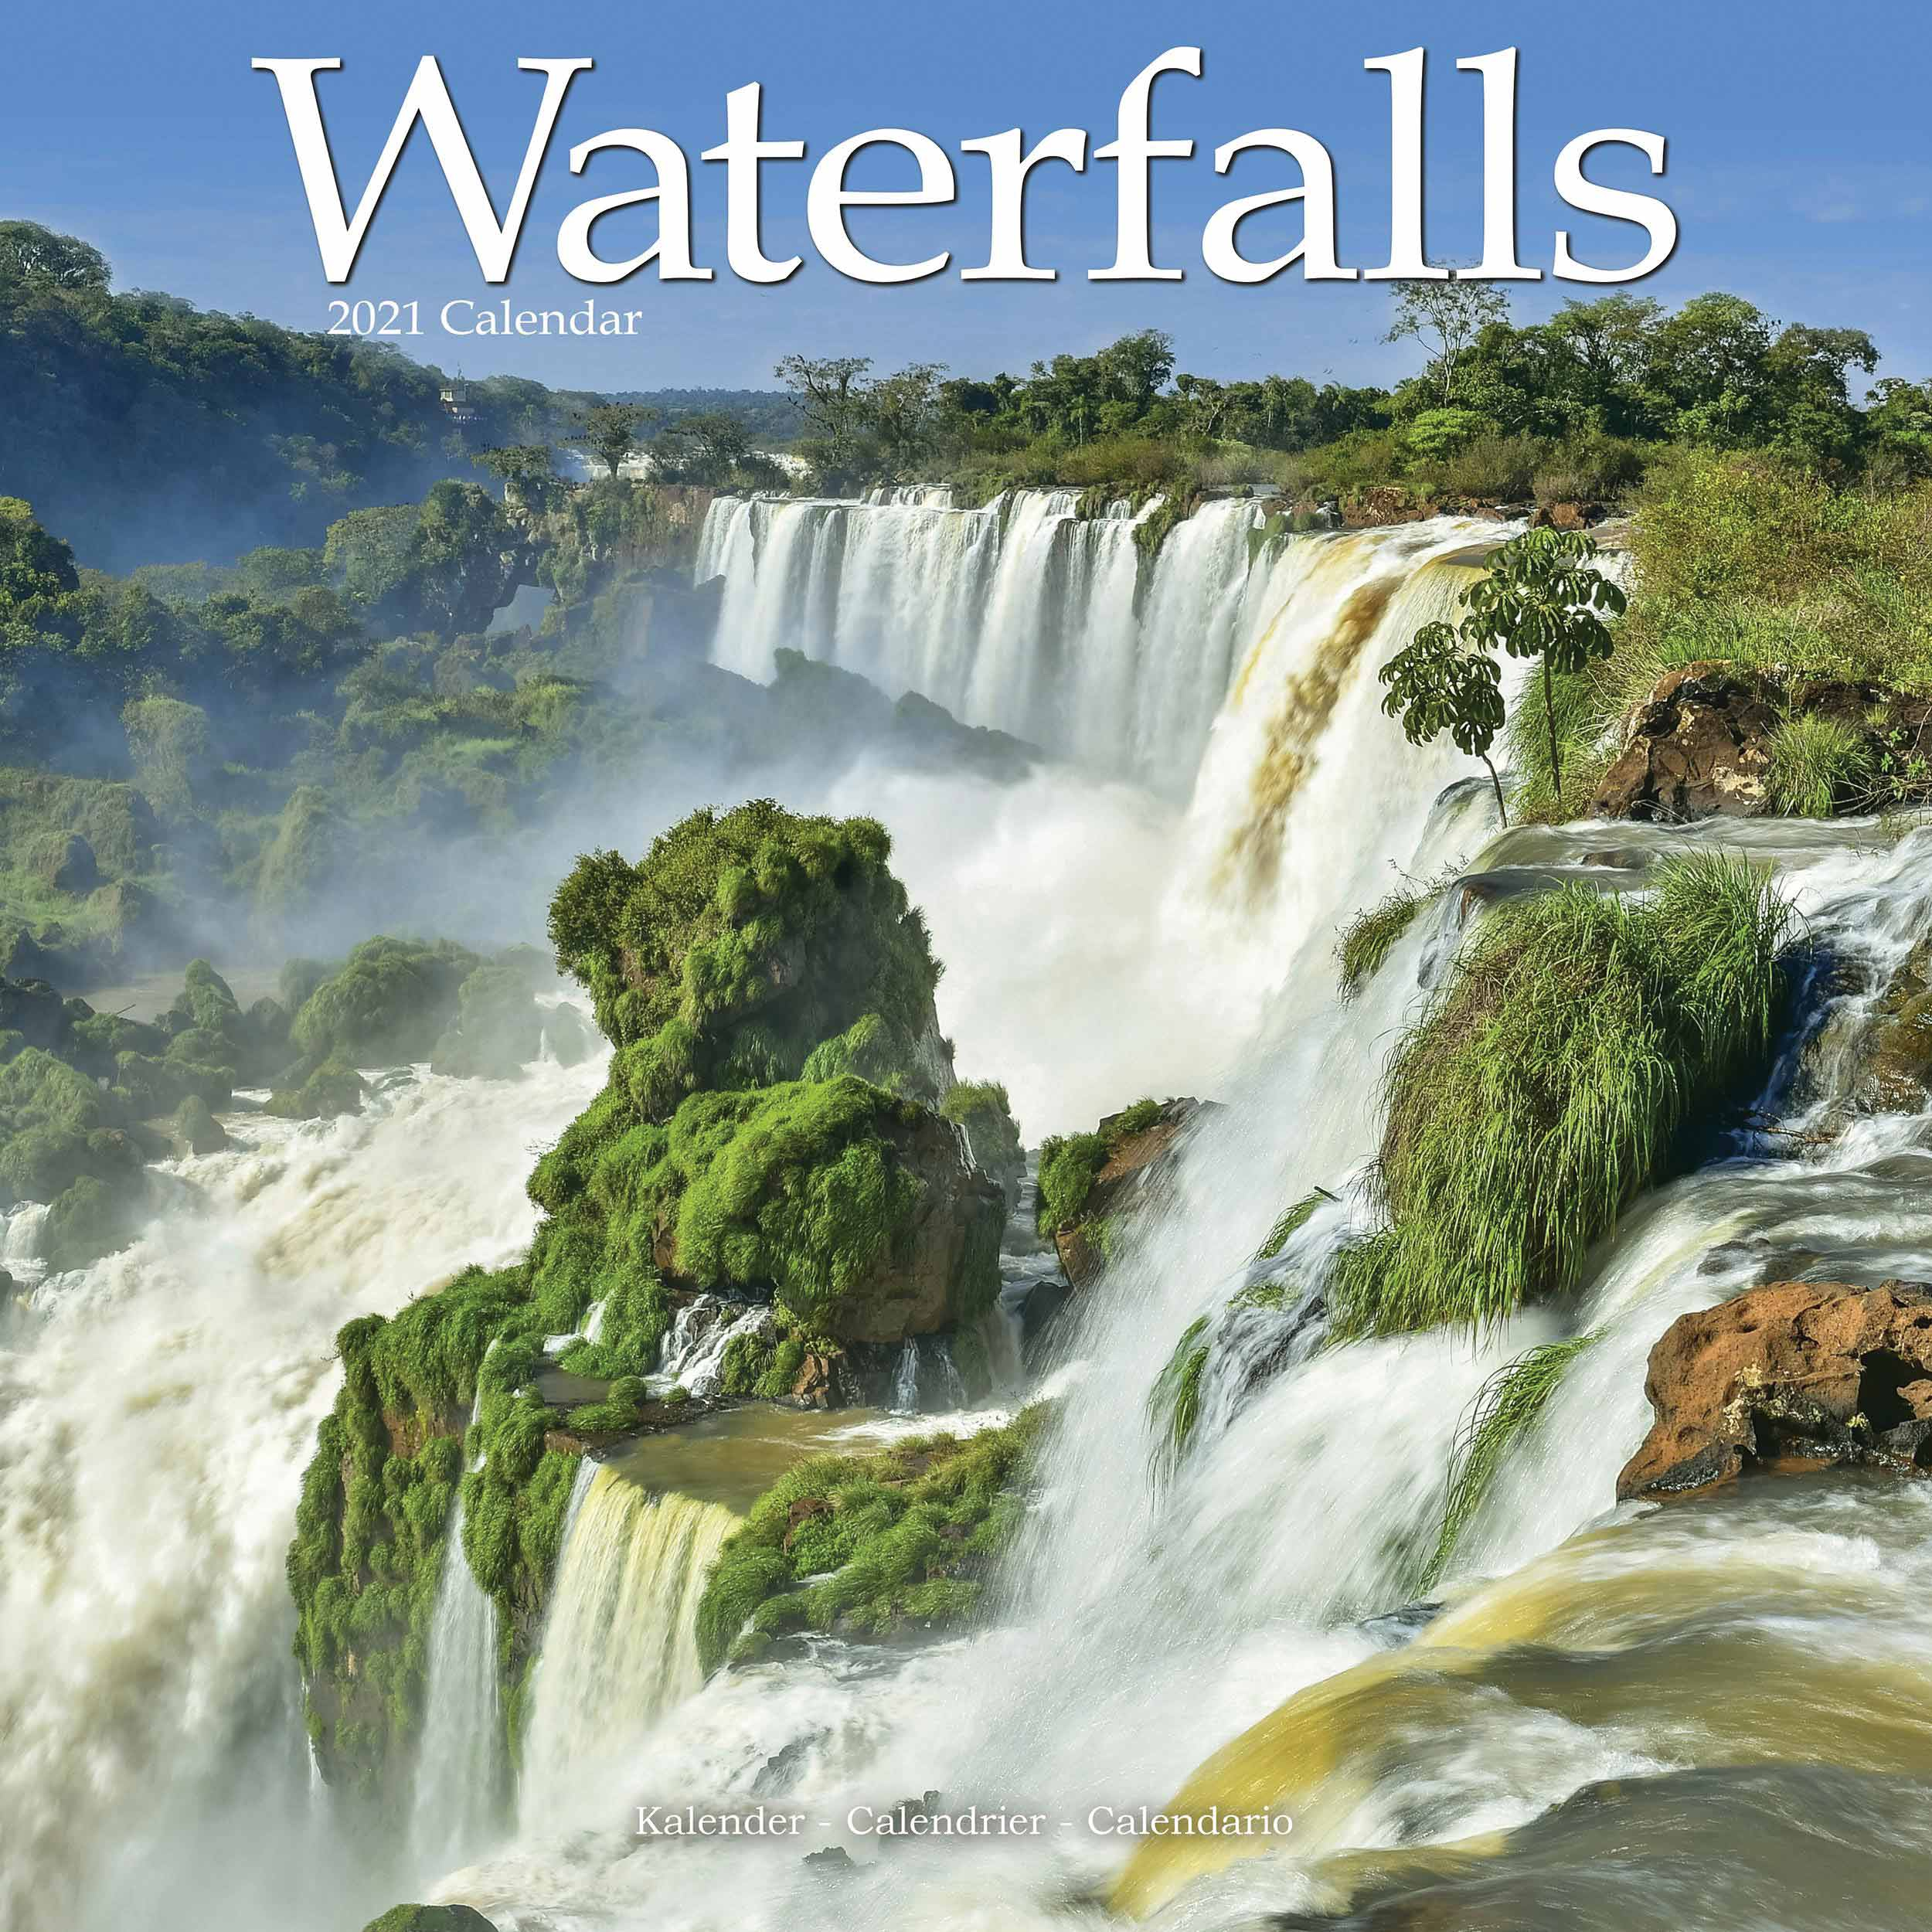 Waterfalls Calendar 2021 At Calendar Club Intended For Niagara Falls School Calendar 2021